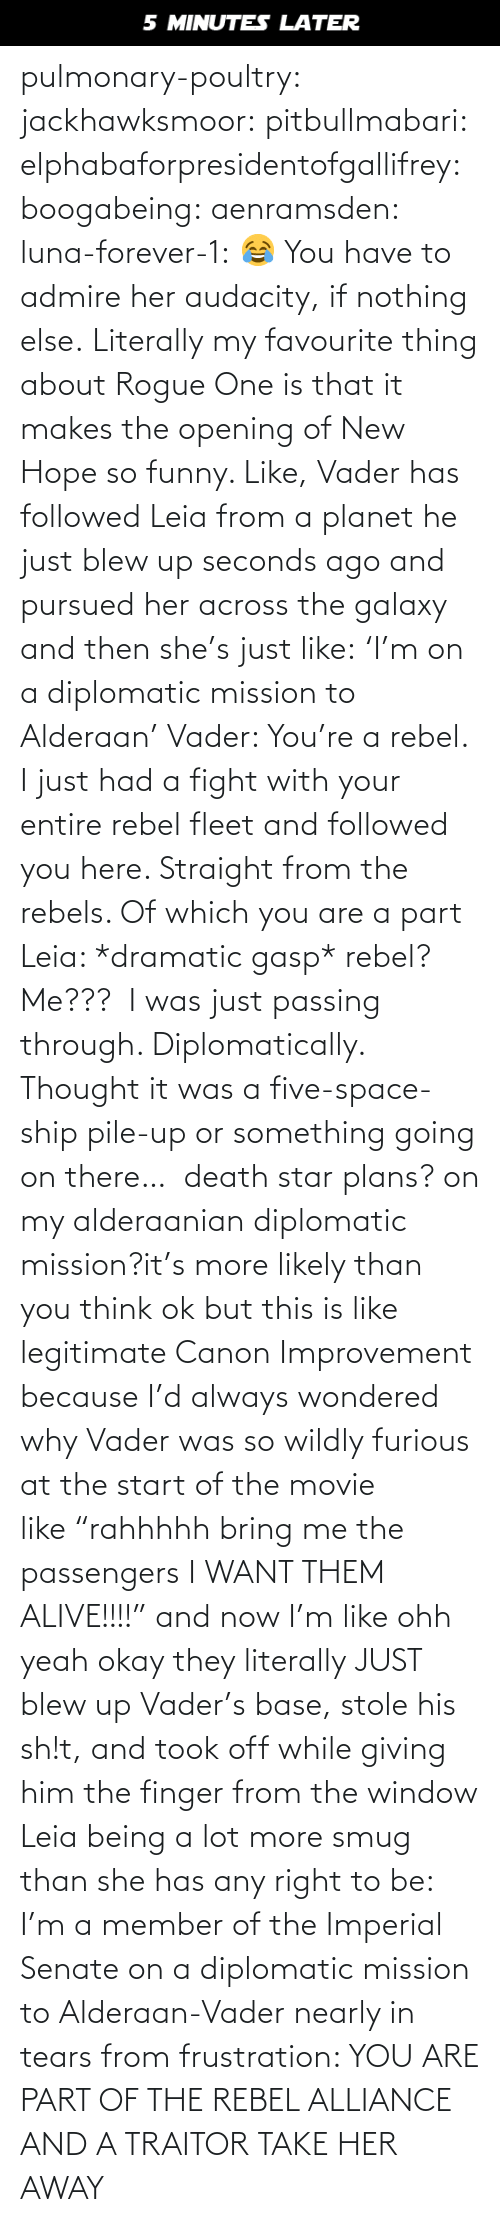 """Blew: 5 MINUTES LATER pulmonary-poultry:  jackhawksmoor:  pitbullmabari:  elphabaforpresidentofgallifrey:  boogabeing:  aenramsden:  luna-forever-1: 😂 You have to admire her audacity, if nothing else.  Literally my favourite thing about Rogue One is that it makes the opening of New Hope so funny. Like, Vader has followed Leia from a planet he just blew up seconds ago and pursued her across the galaxy and then she's just like:'I'm on a diplomatic mission to Alderaan' Vader: You're a rebel. I just had a fight with your entire rebel fleet and followed you here. Straight from the rebels. Of which you are a part Leia: *dramatic gasp* rebel? Me??? I was just passing through. Diplomatically. Thought it was a five-space-ship pile-up or something going on there…  death star plans? on my alderaanian diplomatic mission?it's more likely than you think   ok but this is like legitimate Canon Improvement because I'd always wondered why Vader was so wildly furious at the start of the movie like""""rahhhhh bring me the passengers I WANT THEM ALIVE!!!!"""" and now I'm like ohh yeah okay they literally JUST blew up Vader's base, stole his sh!t, and took off while giving him the finger from the window    Leia being a lot more smug than she has any right to be: I'm a member of the Imperial Senate on a diplomatic mission to Alderaan-Vader nearly in tears from frustration: YOU ARE PART OF THE REBEL ALLIANCE AND A TRAITOR TAKE HER AWAY"""